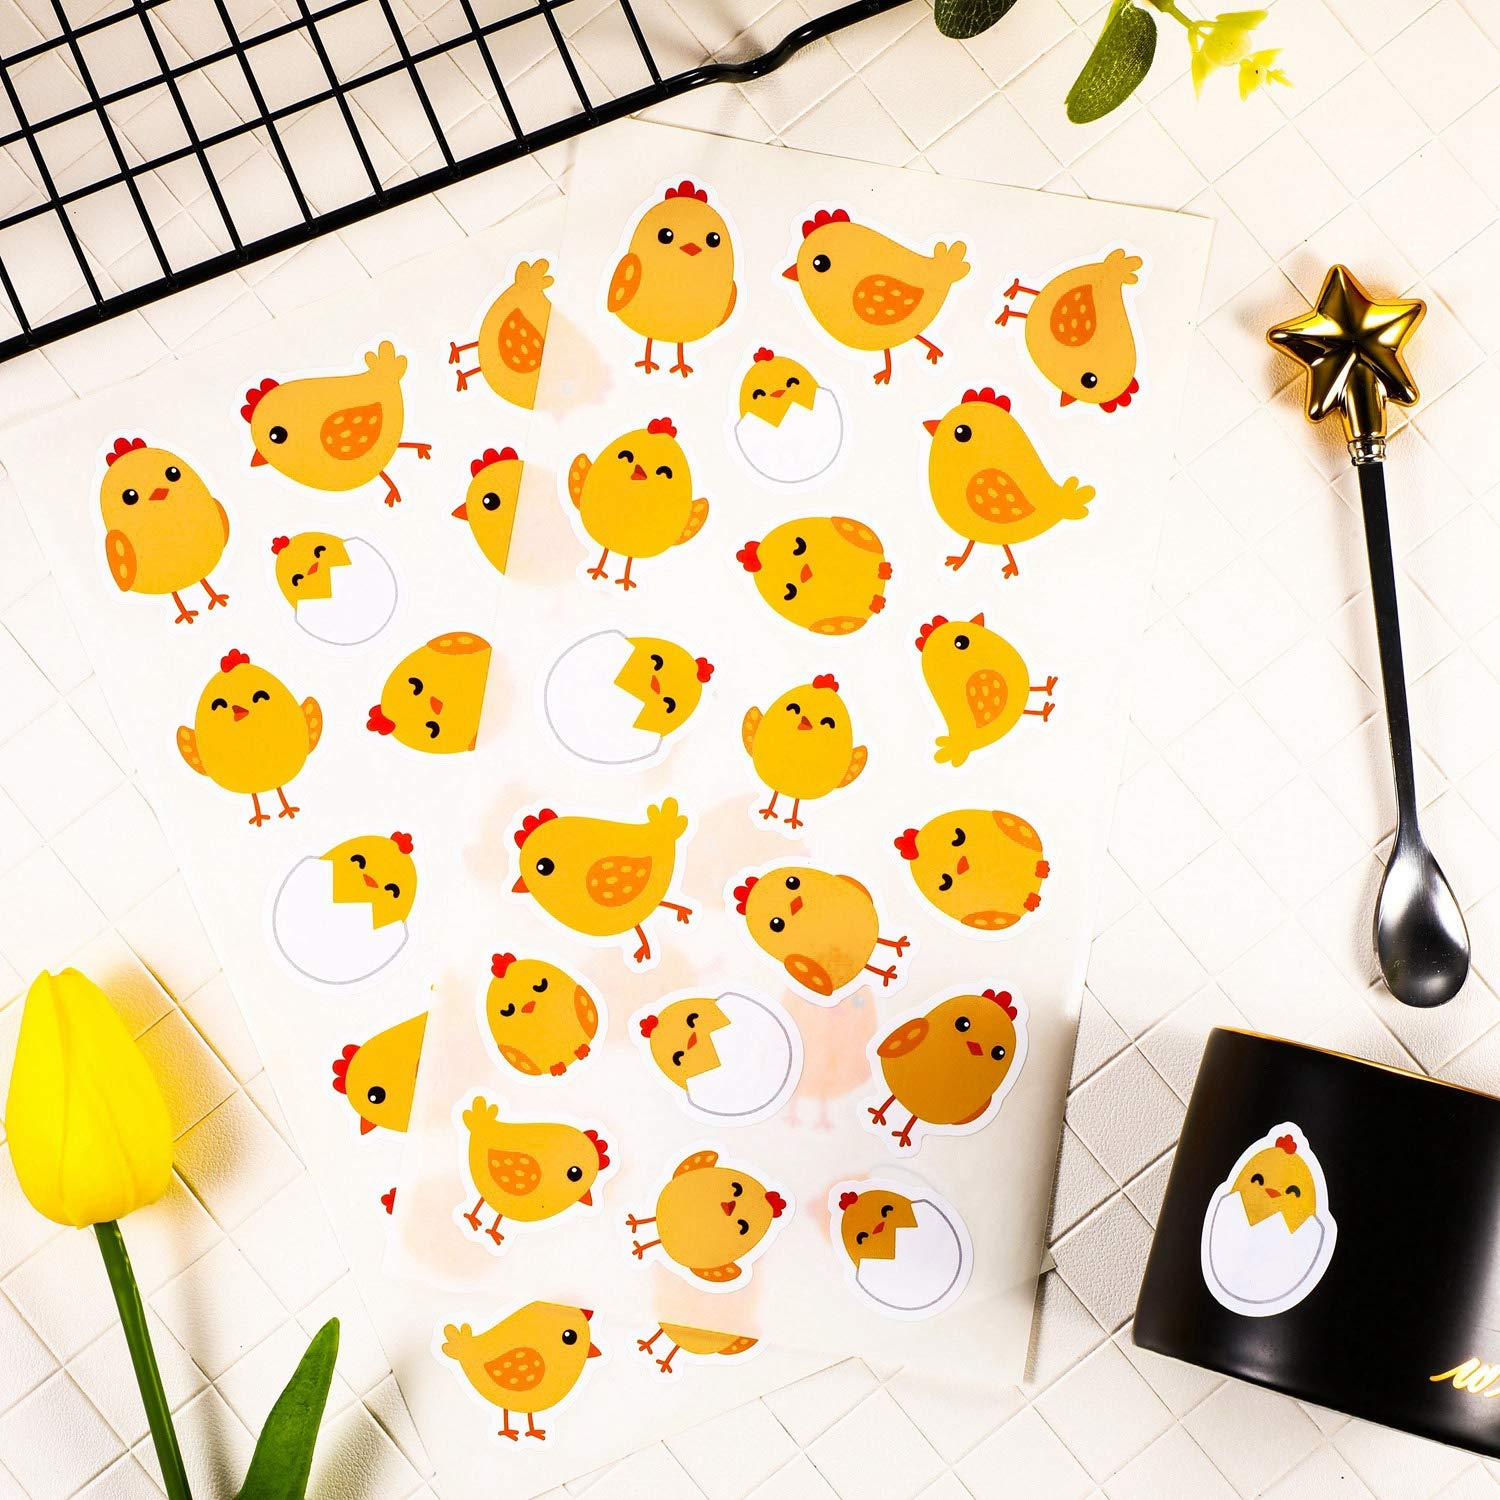 Chick Leinuosen 380 Pieces Easter Egg Bunny Chick Shinny Stickers Easter Eggs Fillers 20 Sheets